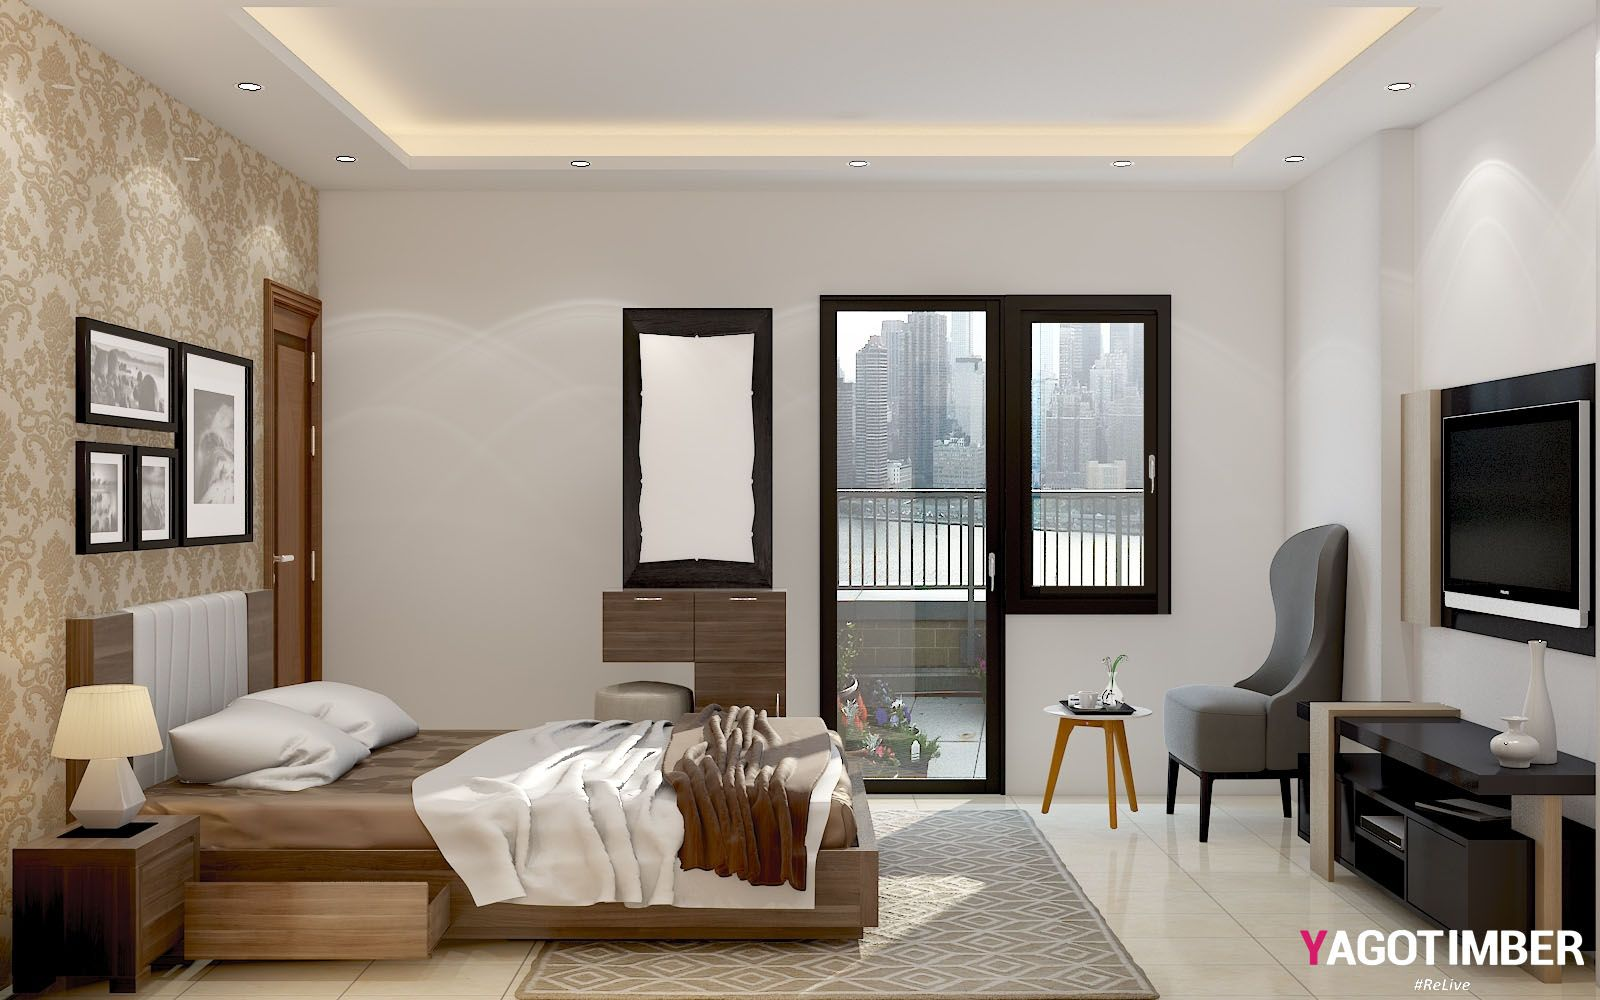 Design Your Dream Bedroom With The Best Designers Of Yagotimber In Fair Design Your Living Room Online 2018